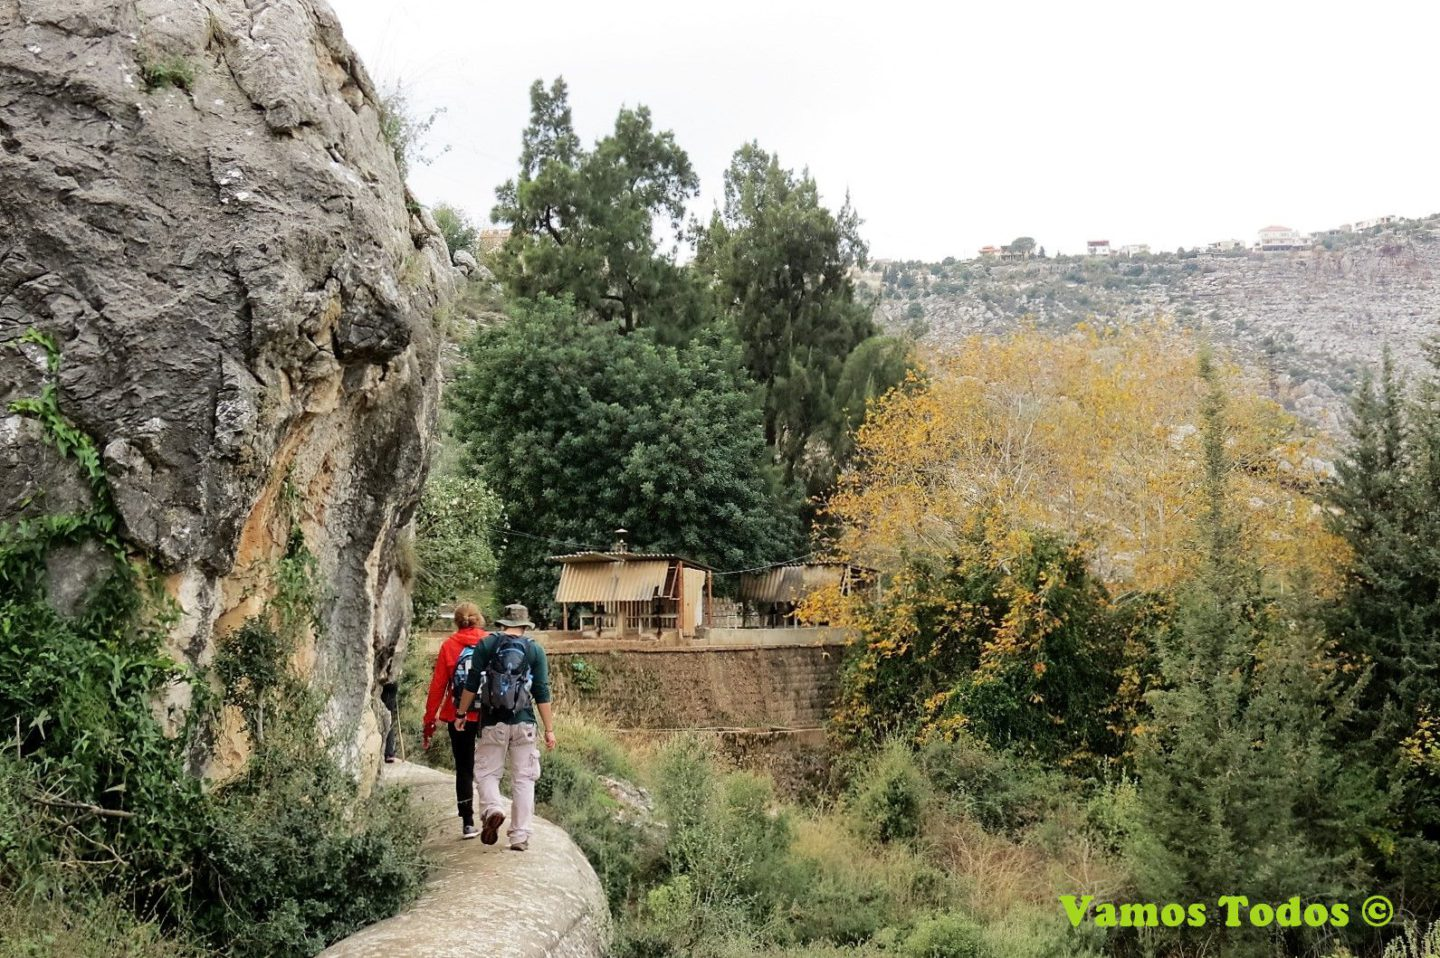 A shared nature experience in Lebanon |The Switchers